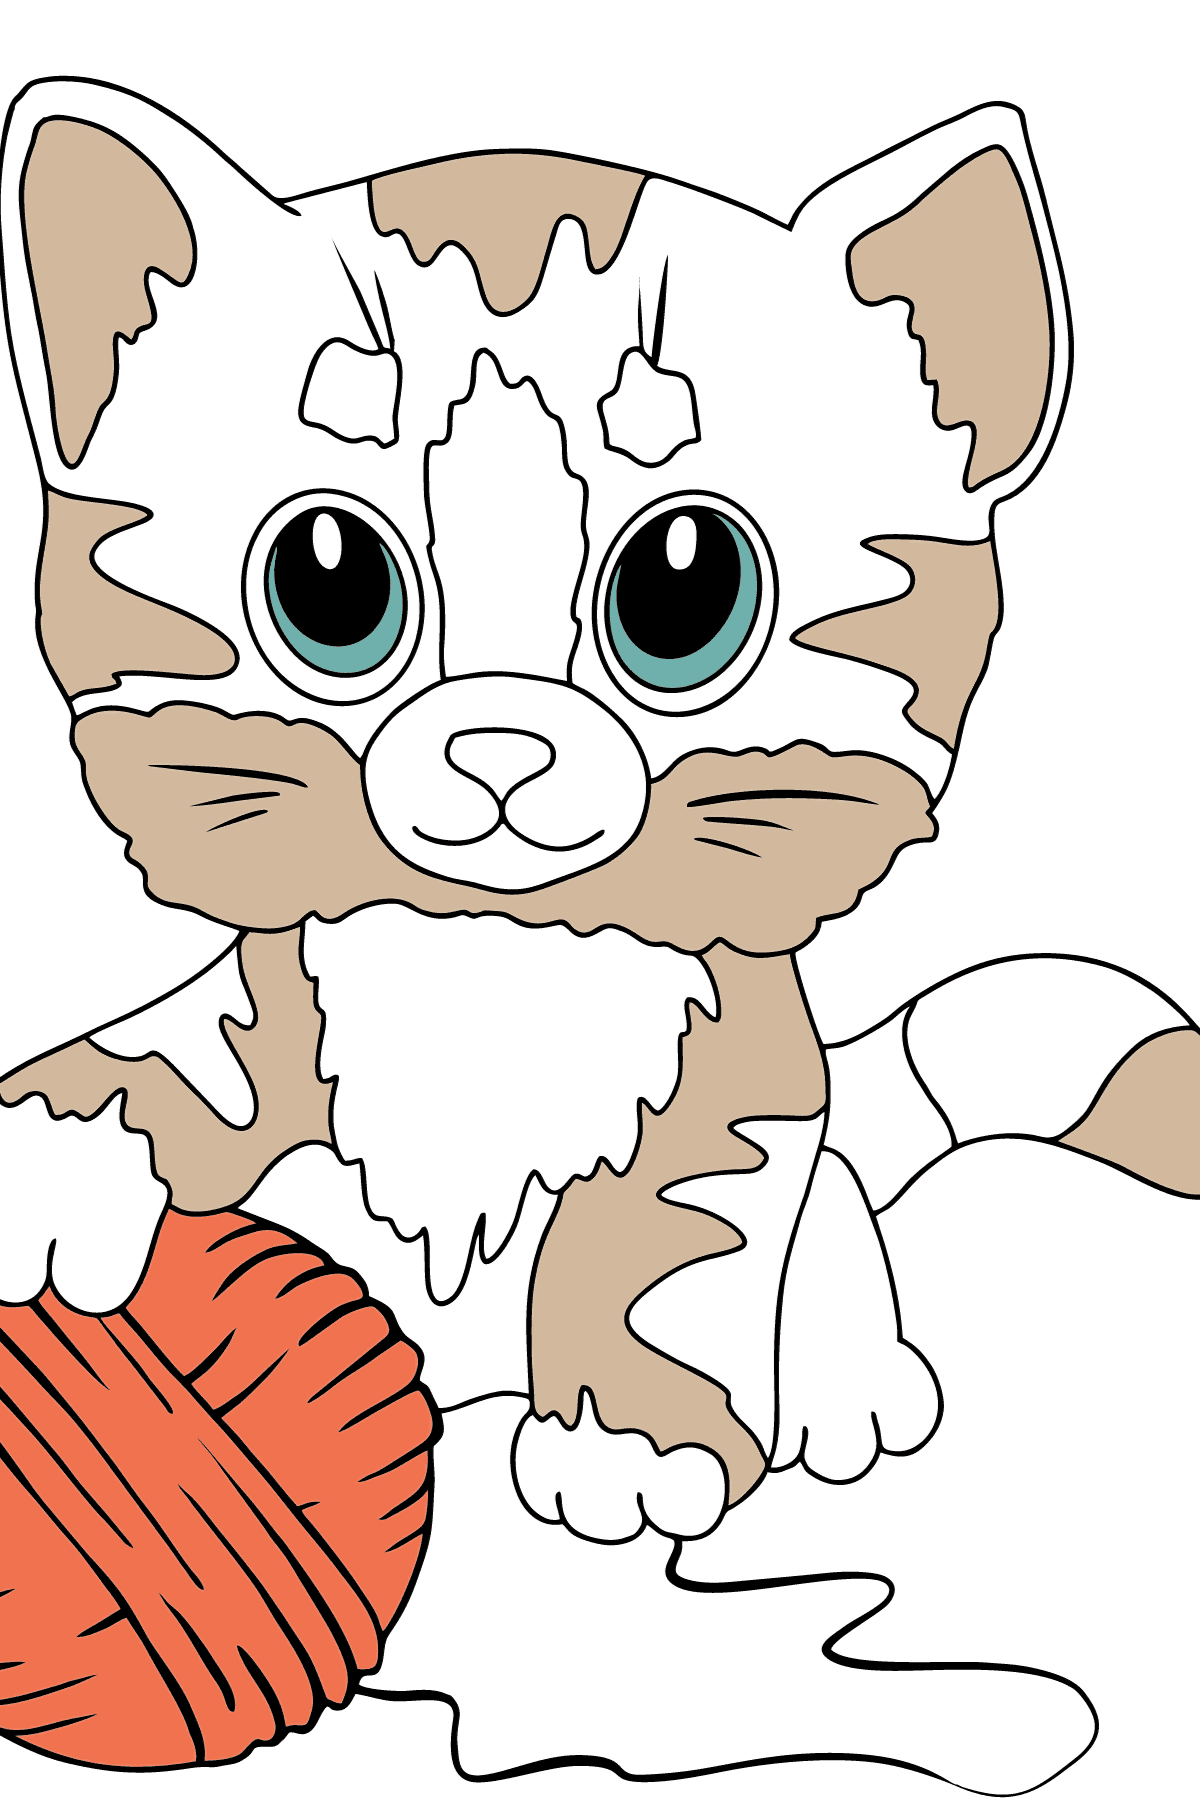 Coloring Page - a Kitten has Caught a Ball of Yarn - Coloring Pages for Children